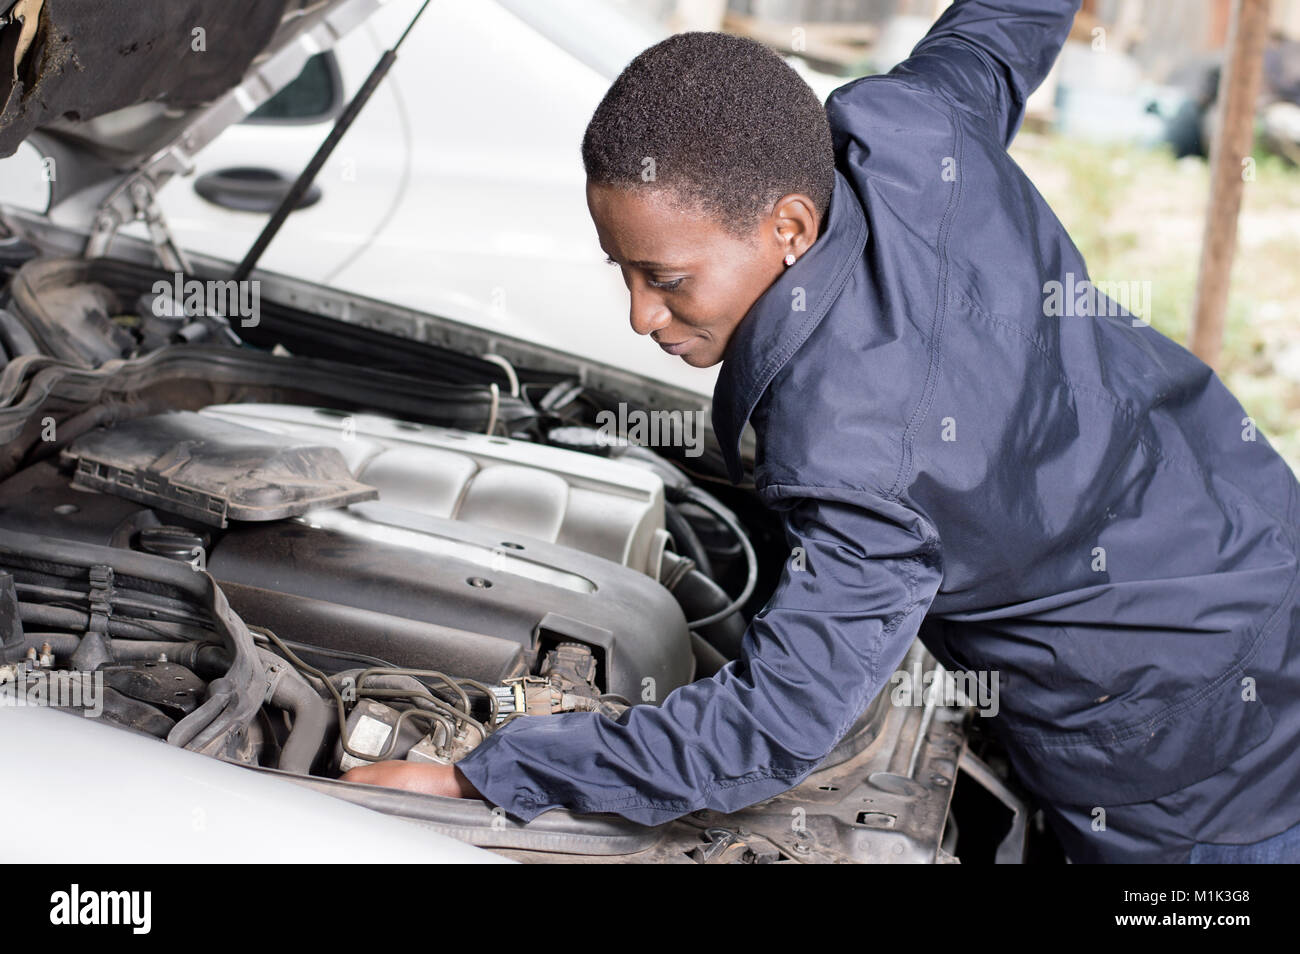 Mechanic repairs the engine of a car in his workshop. - Stock Image